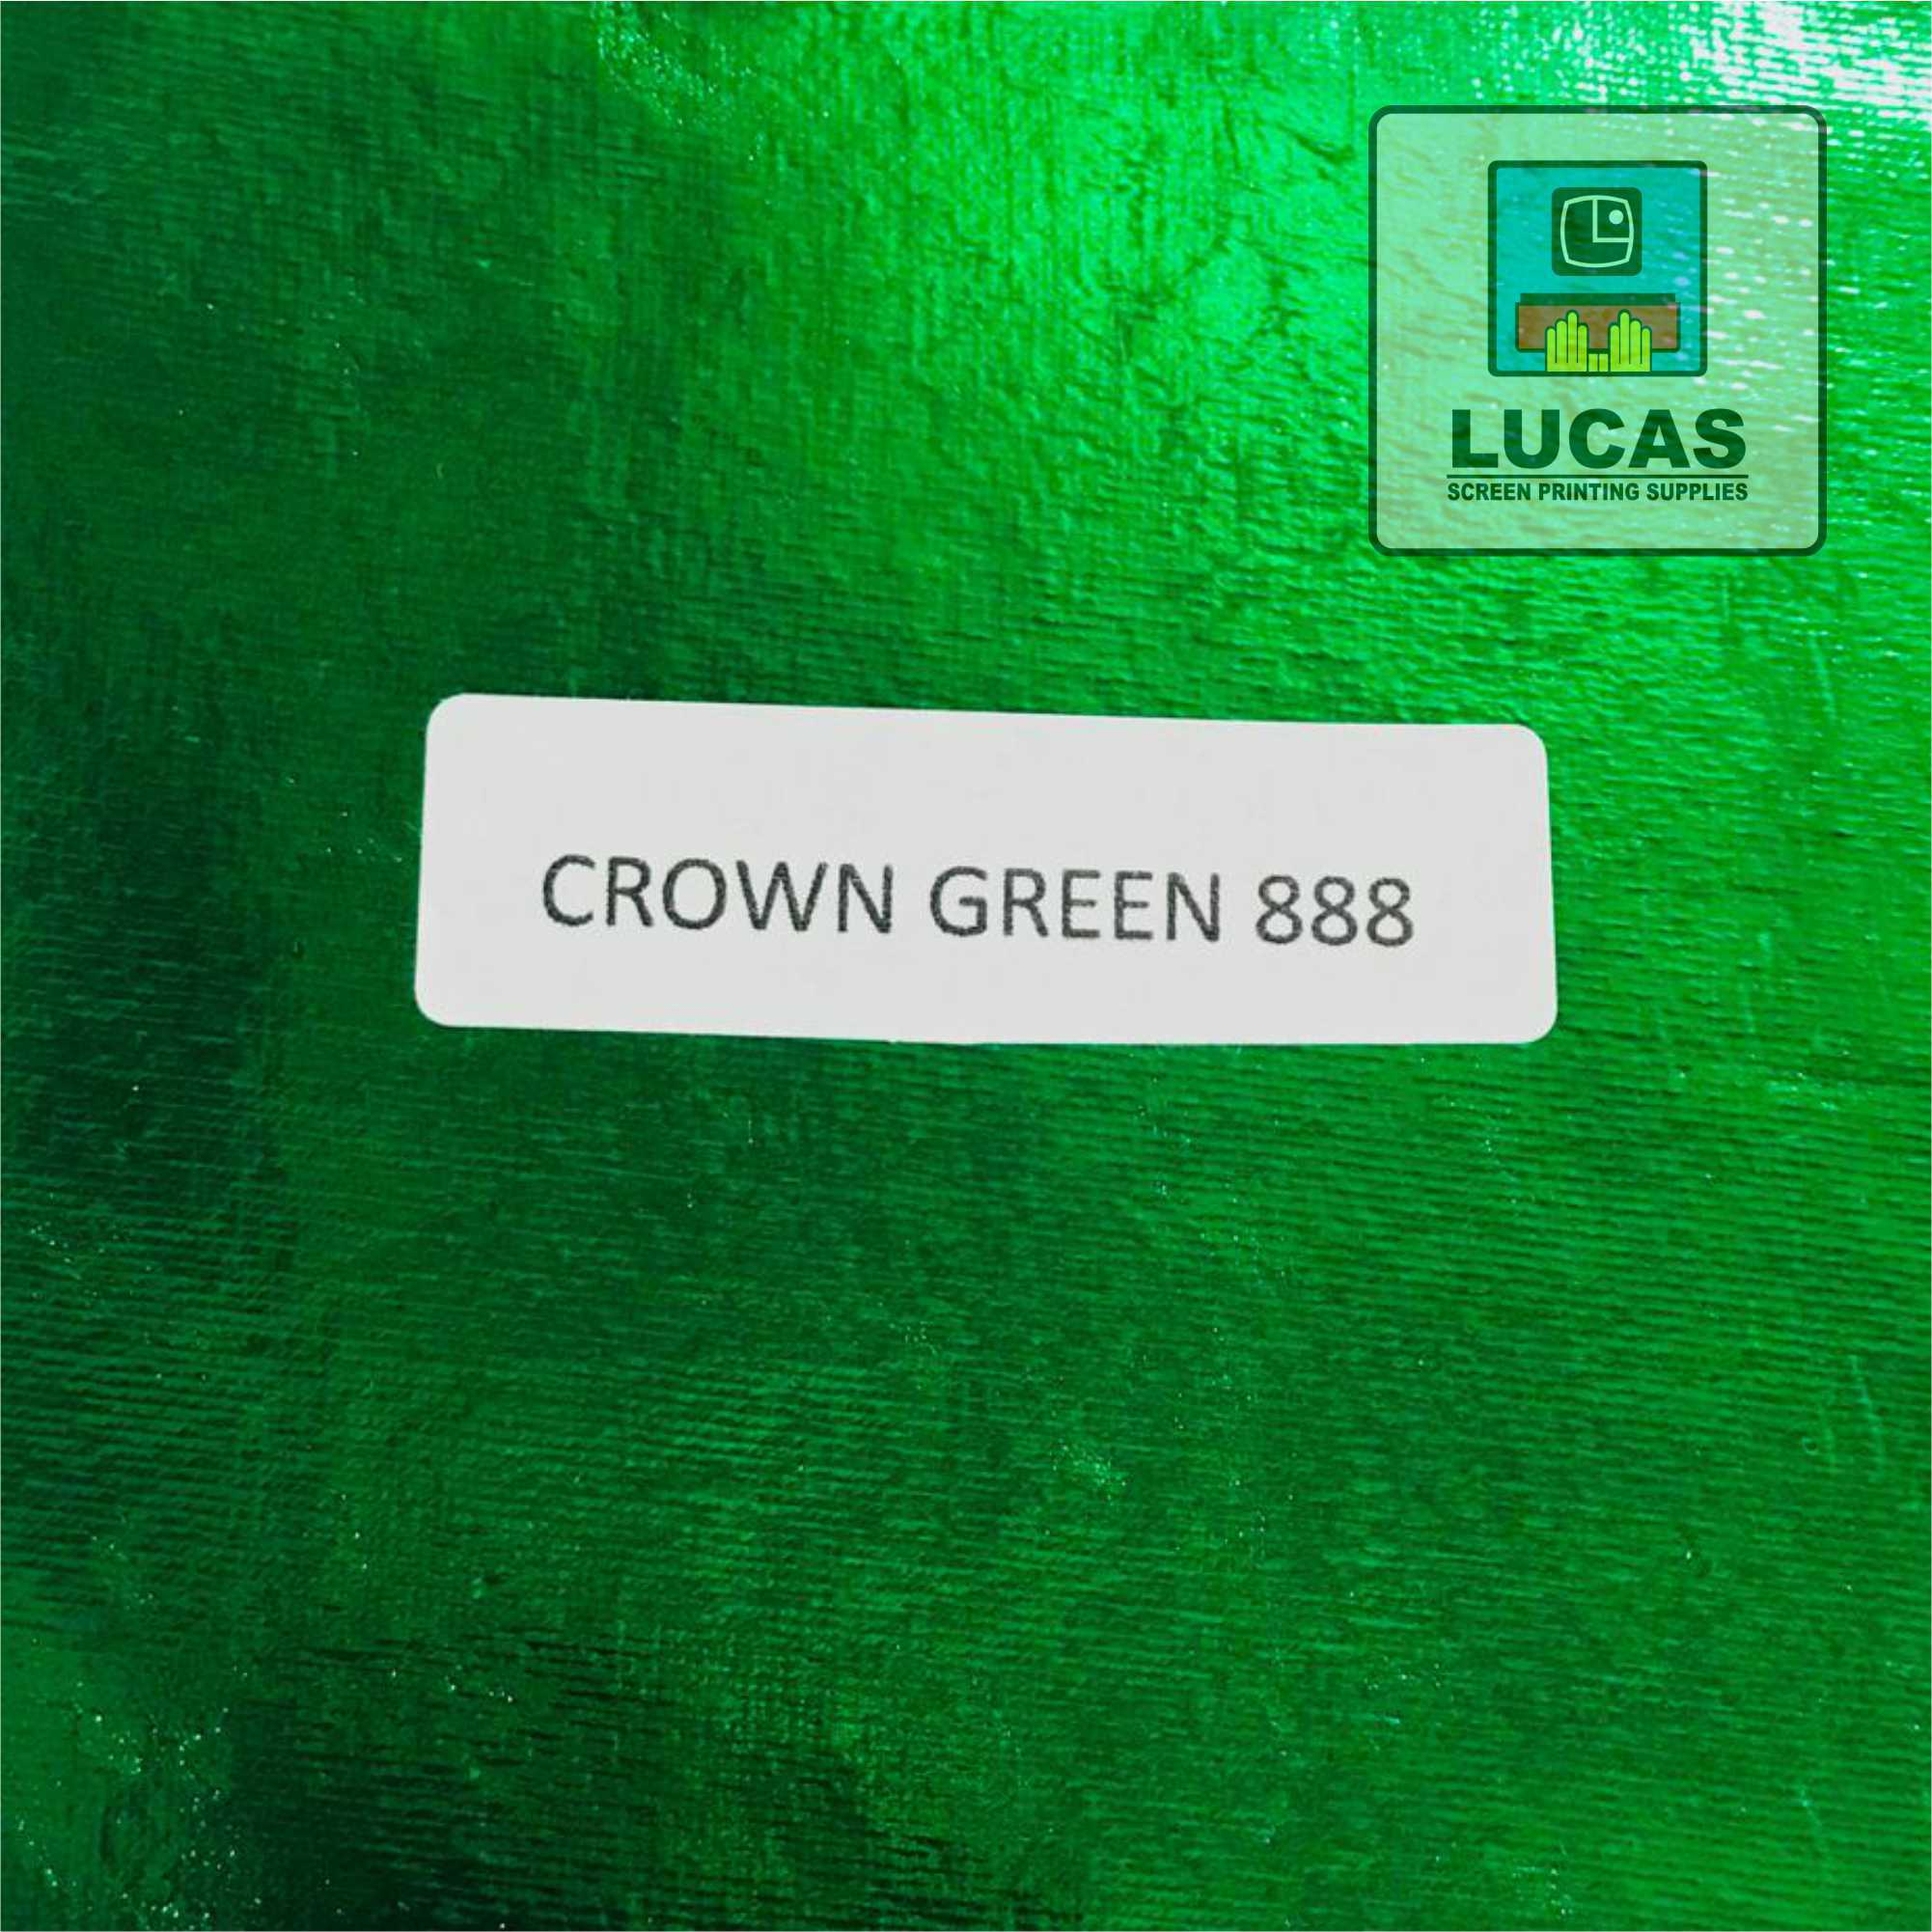 CROWN GREEN 888.jpg